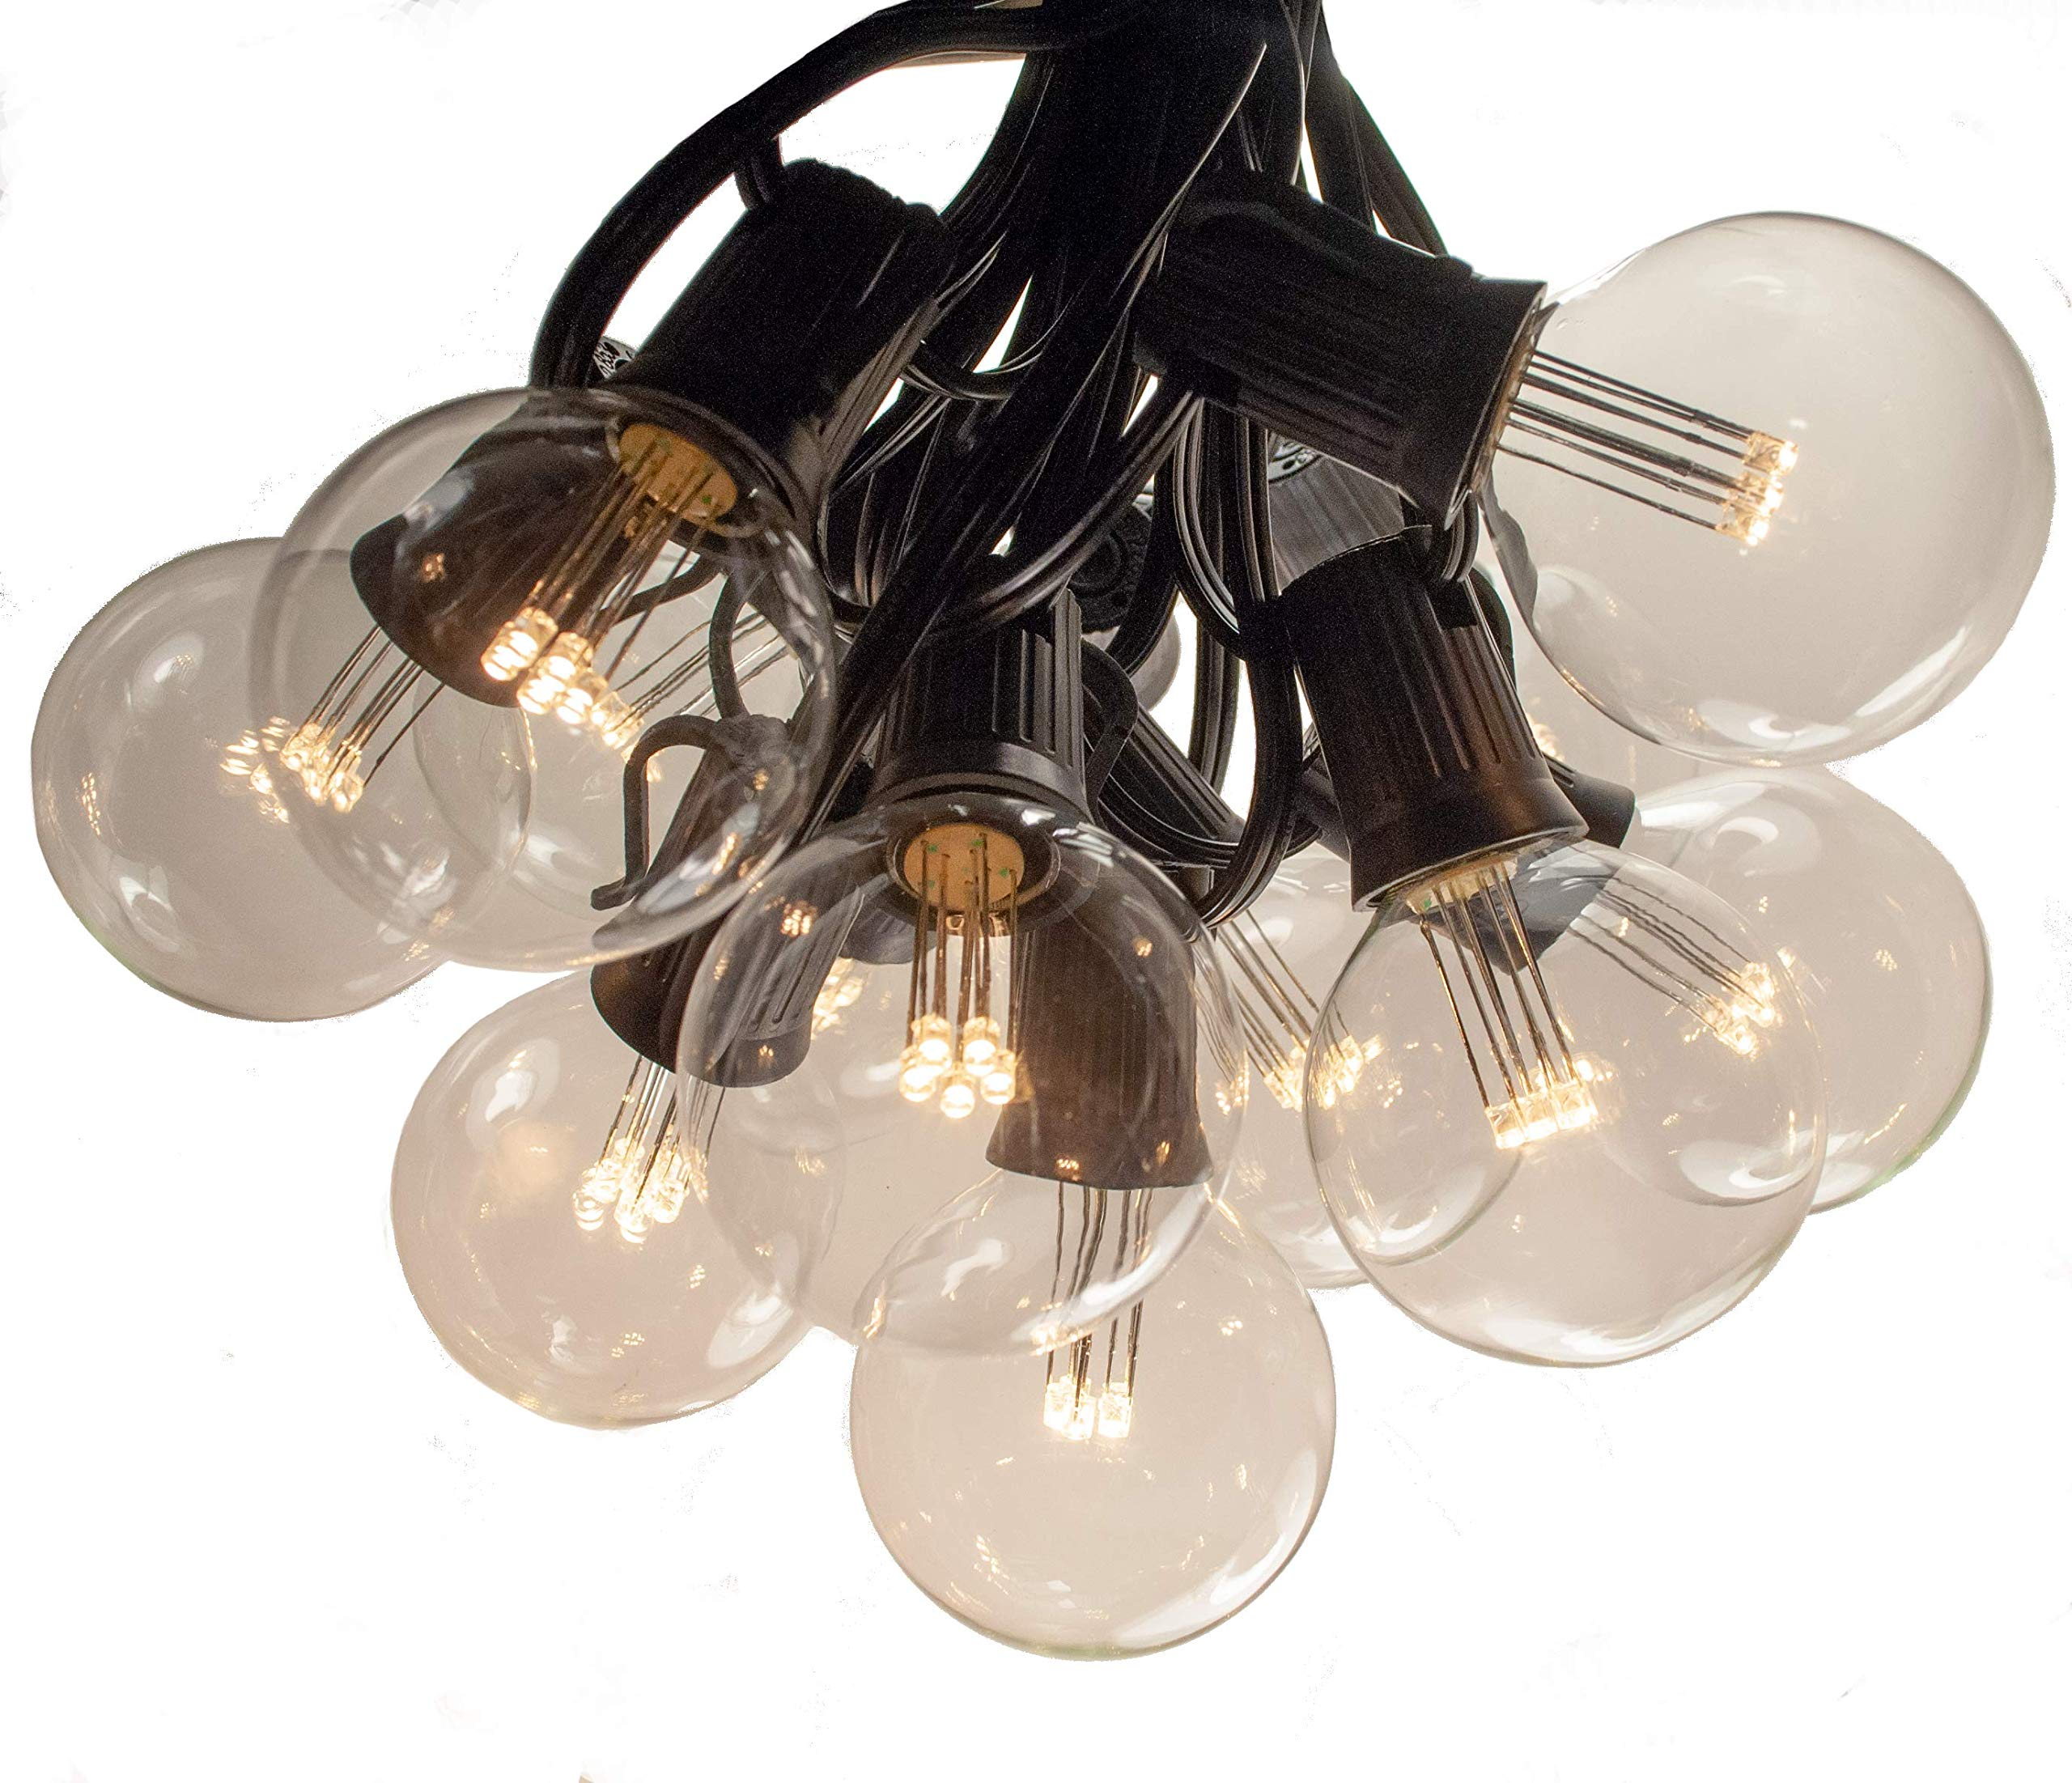 25 Foot LED Warm White Outdoor Globe Patio String Lights - Set of 25 LED G50 Clear 2 Inch Bulbs with Black Cord